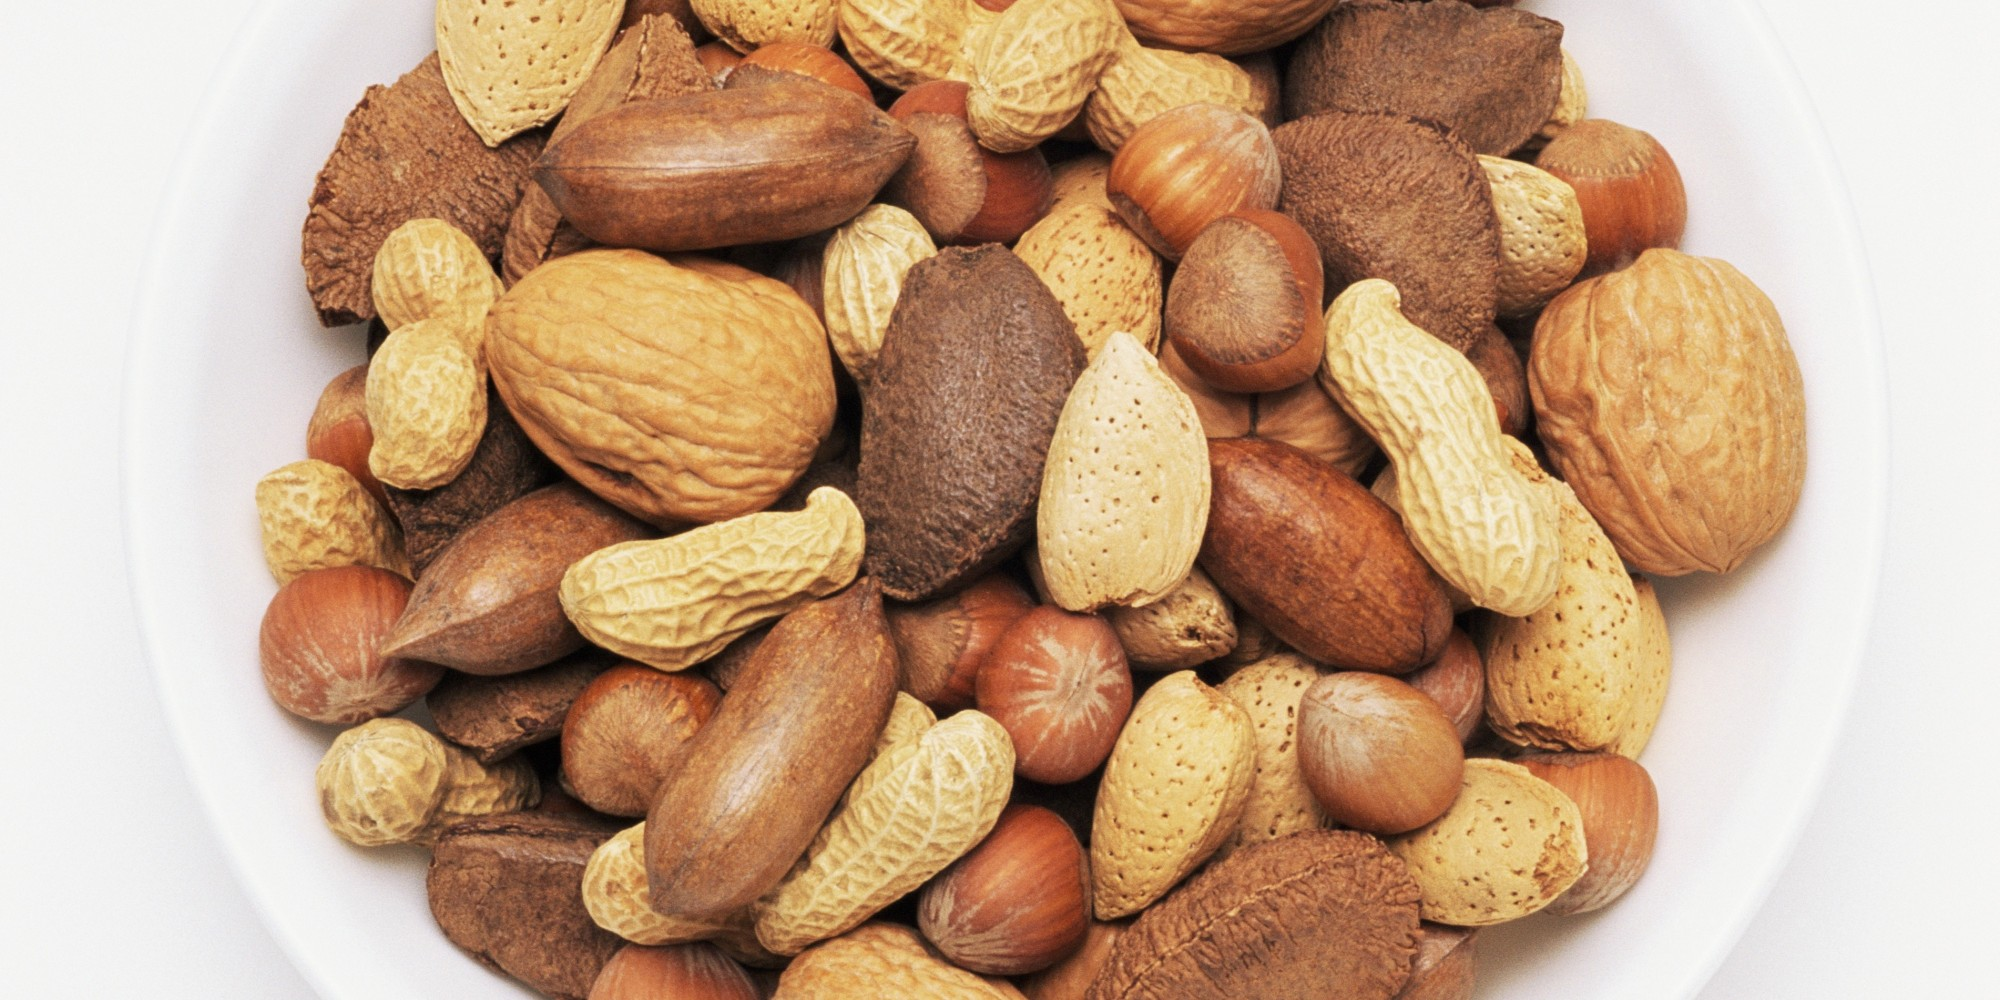 Nuts that help you live longer